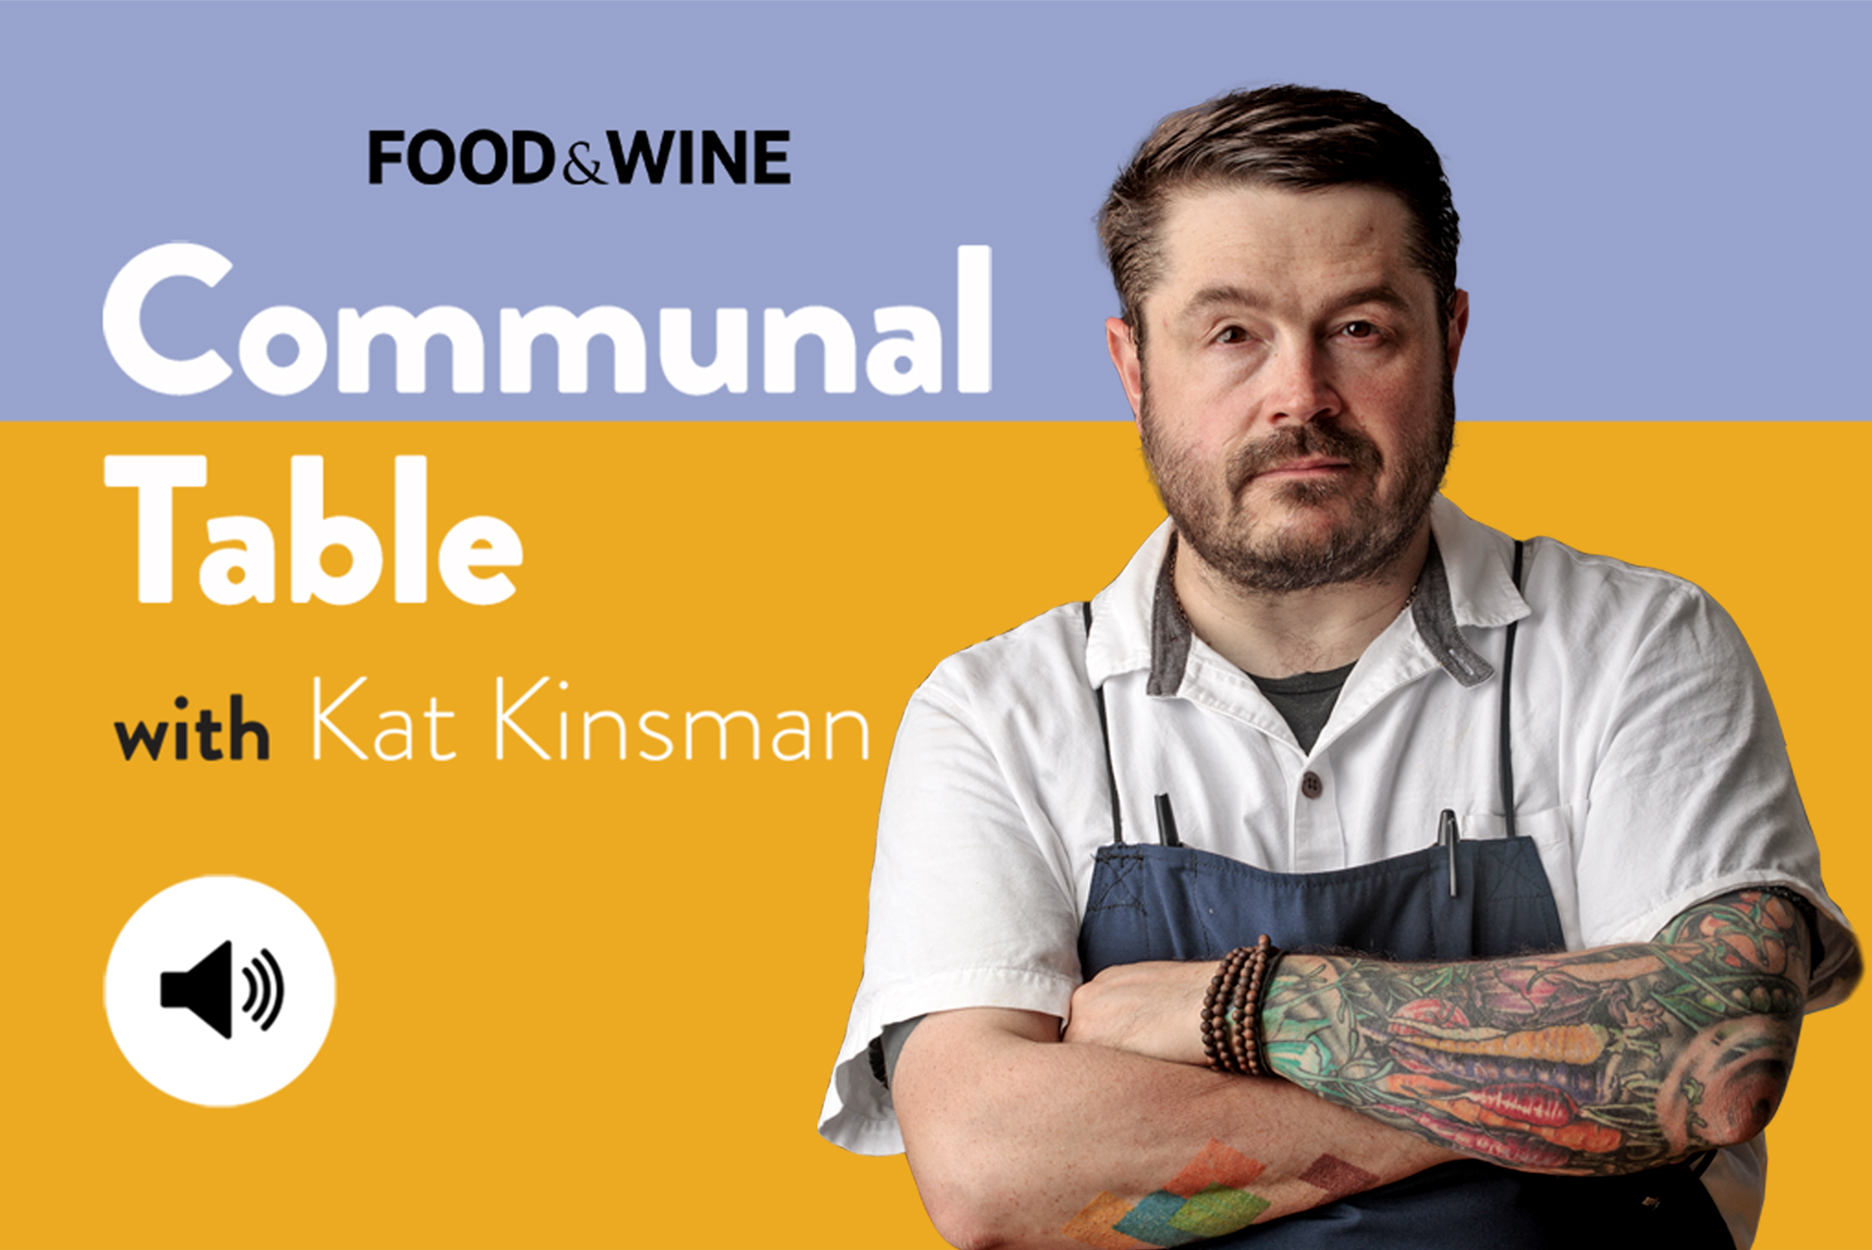 Communal Table with Kat Kinsman featuring Sean Brock